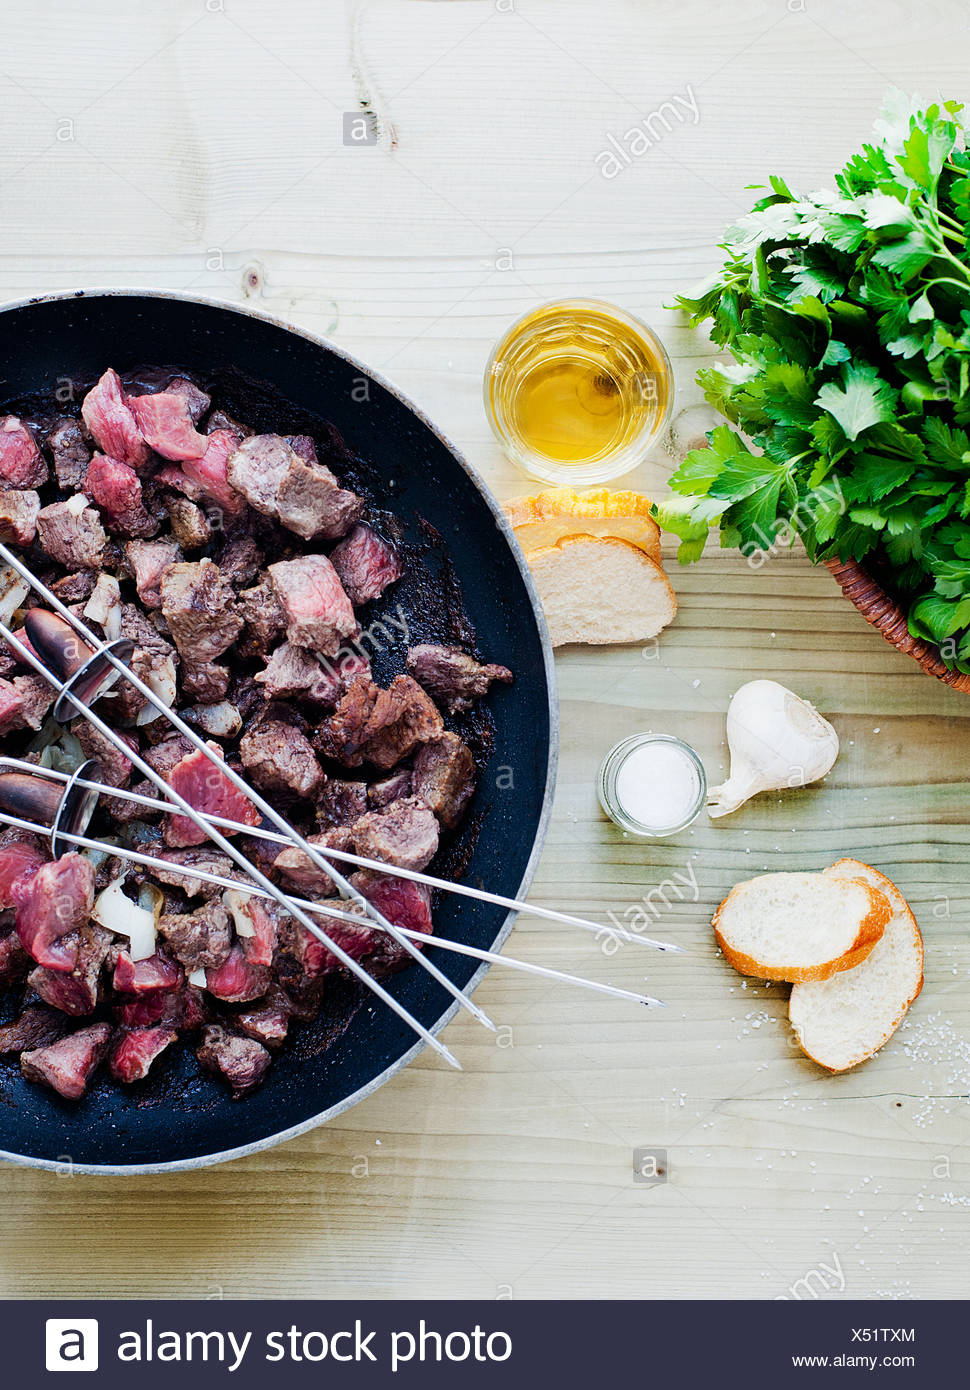 Skewers and meat cooking in pan - Stock Image